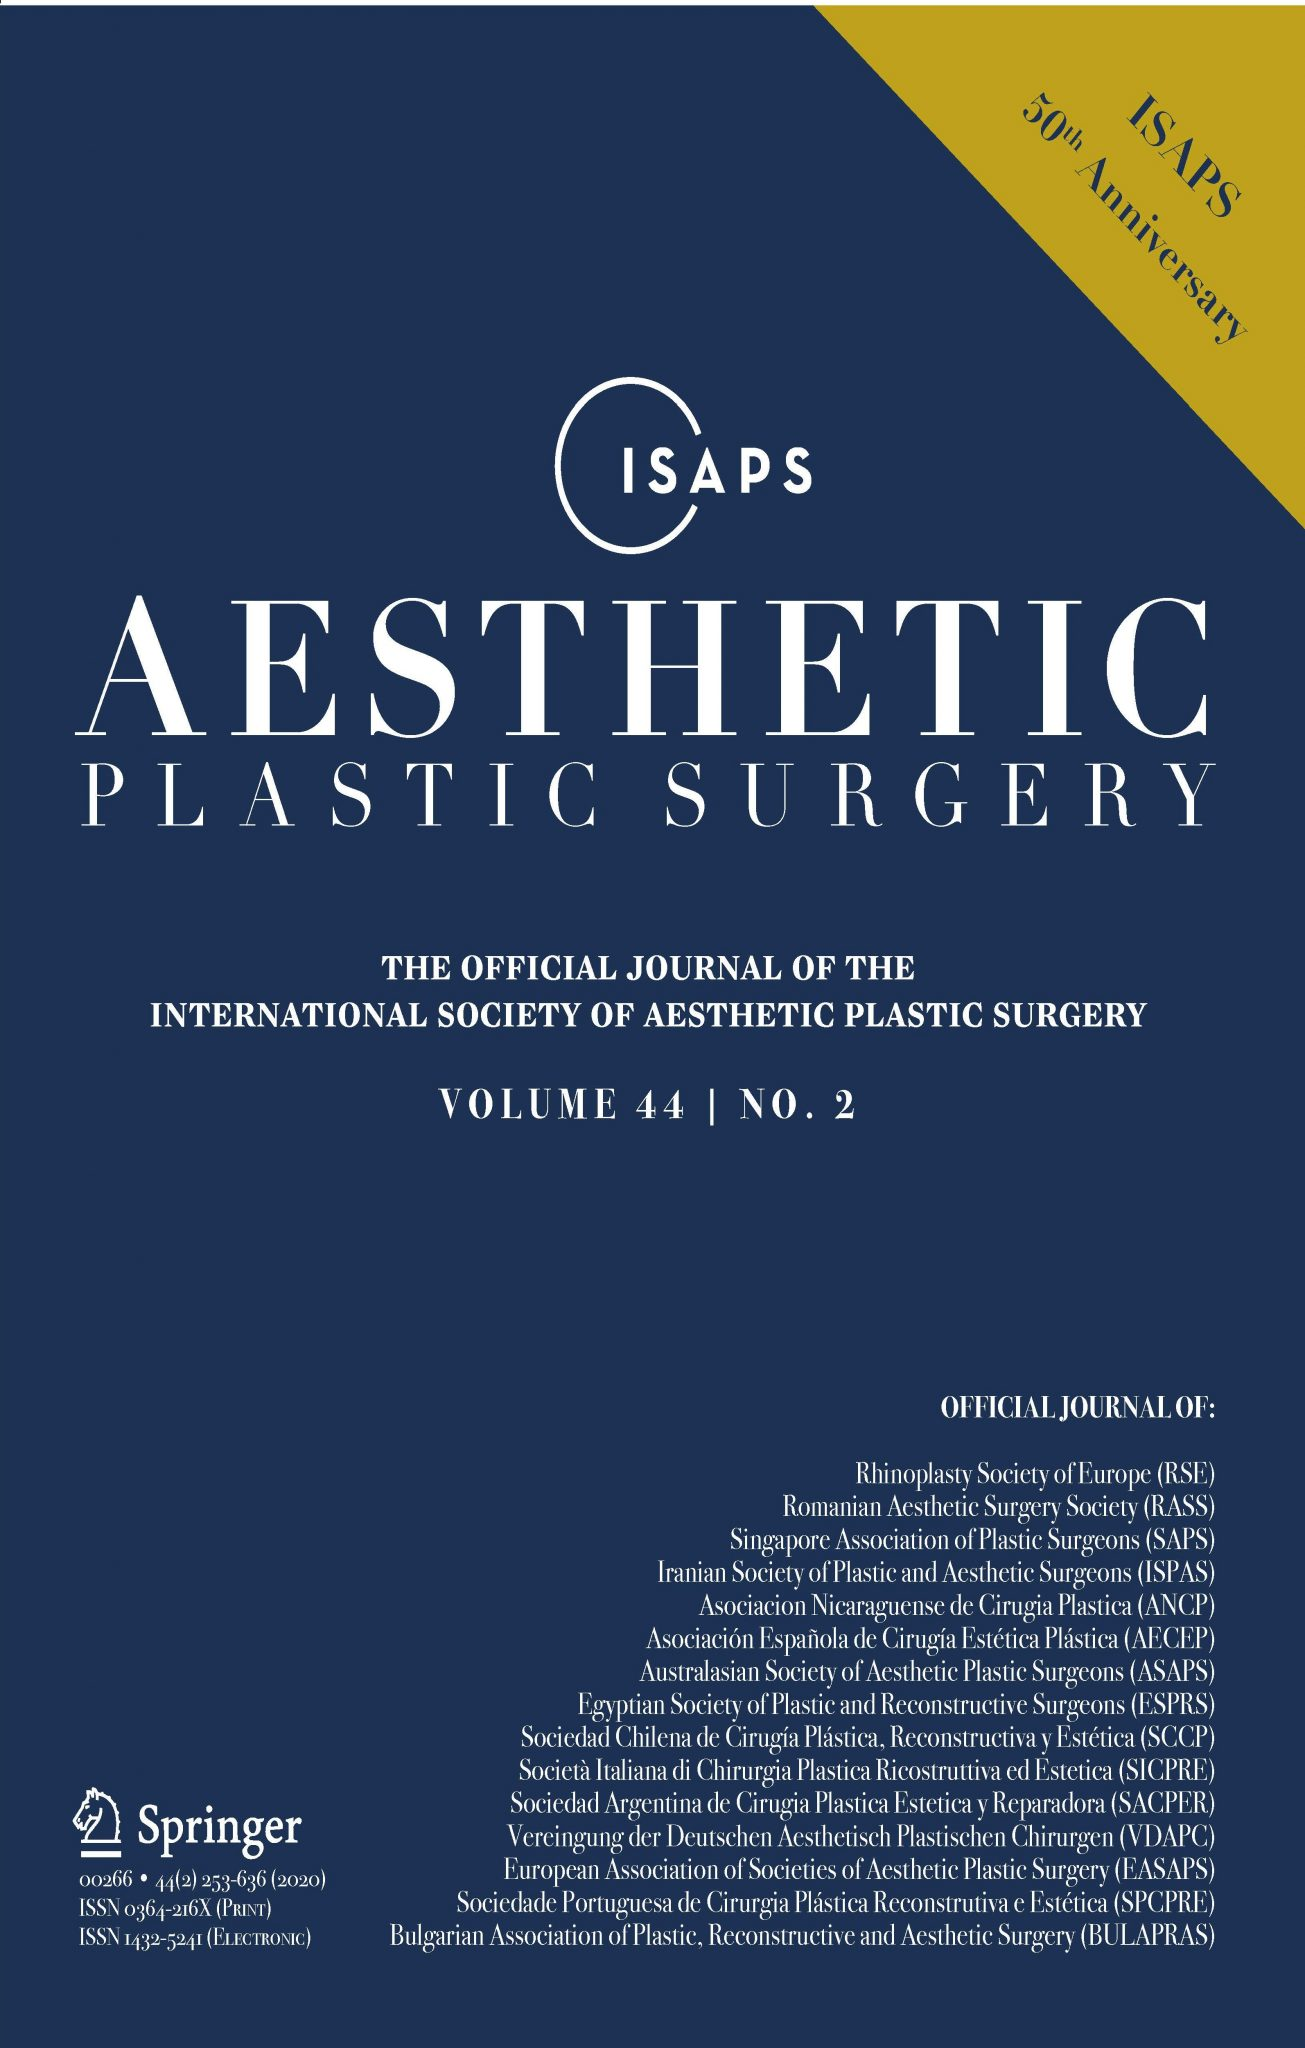 Plastic Surgery Articles The Art Of Plastic Surgery